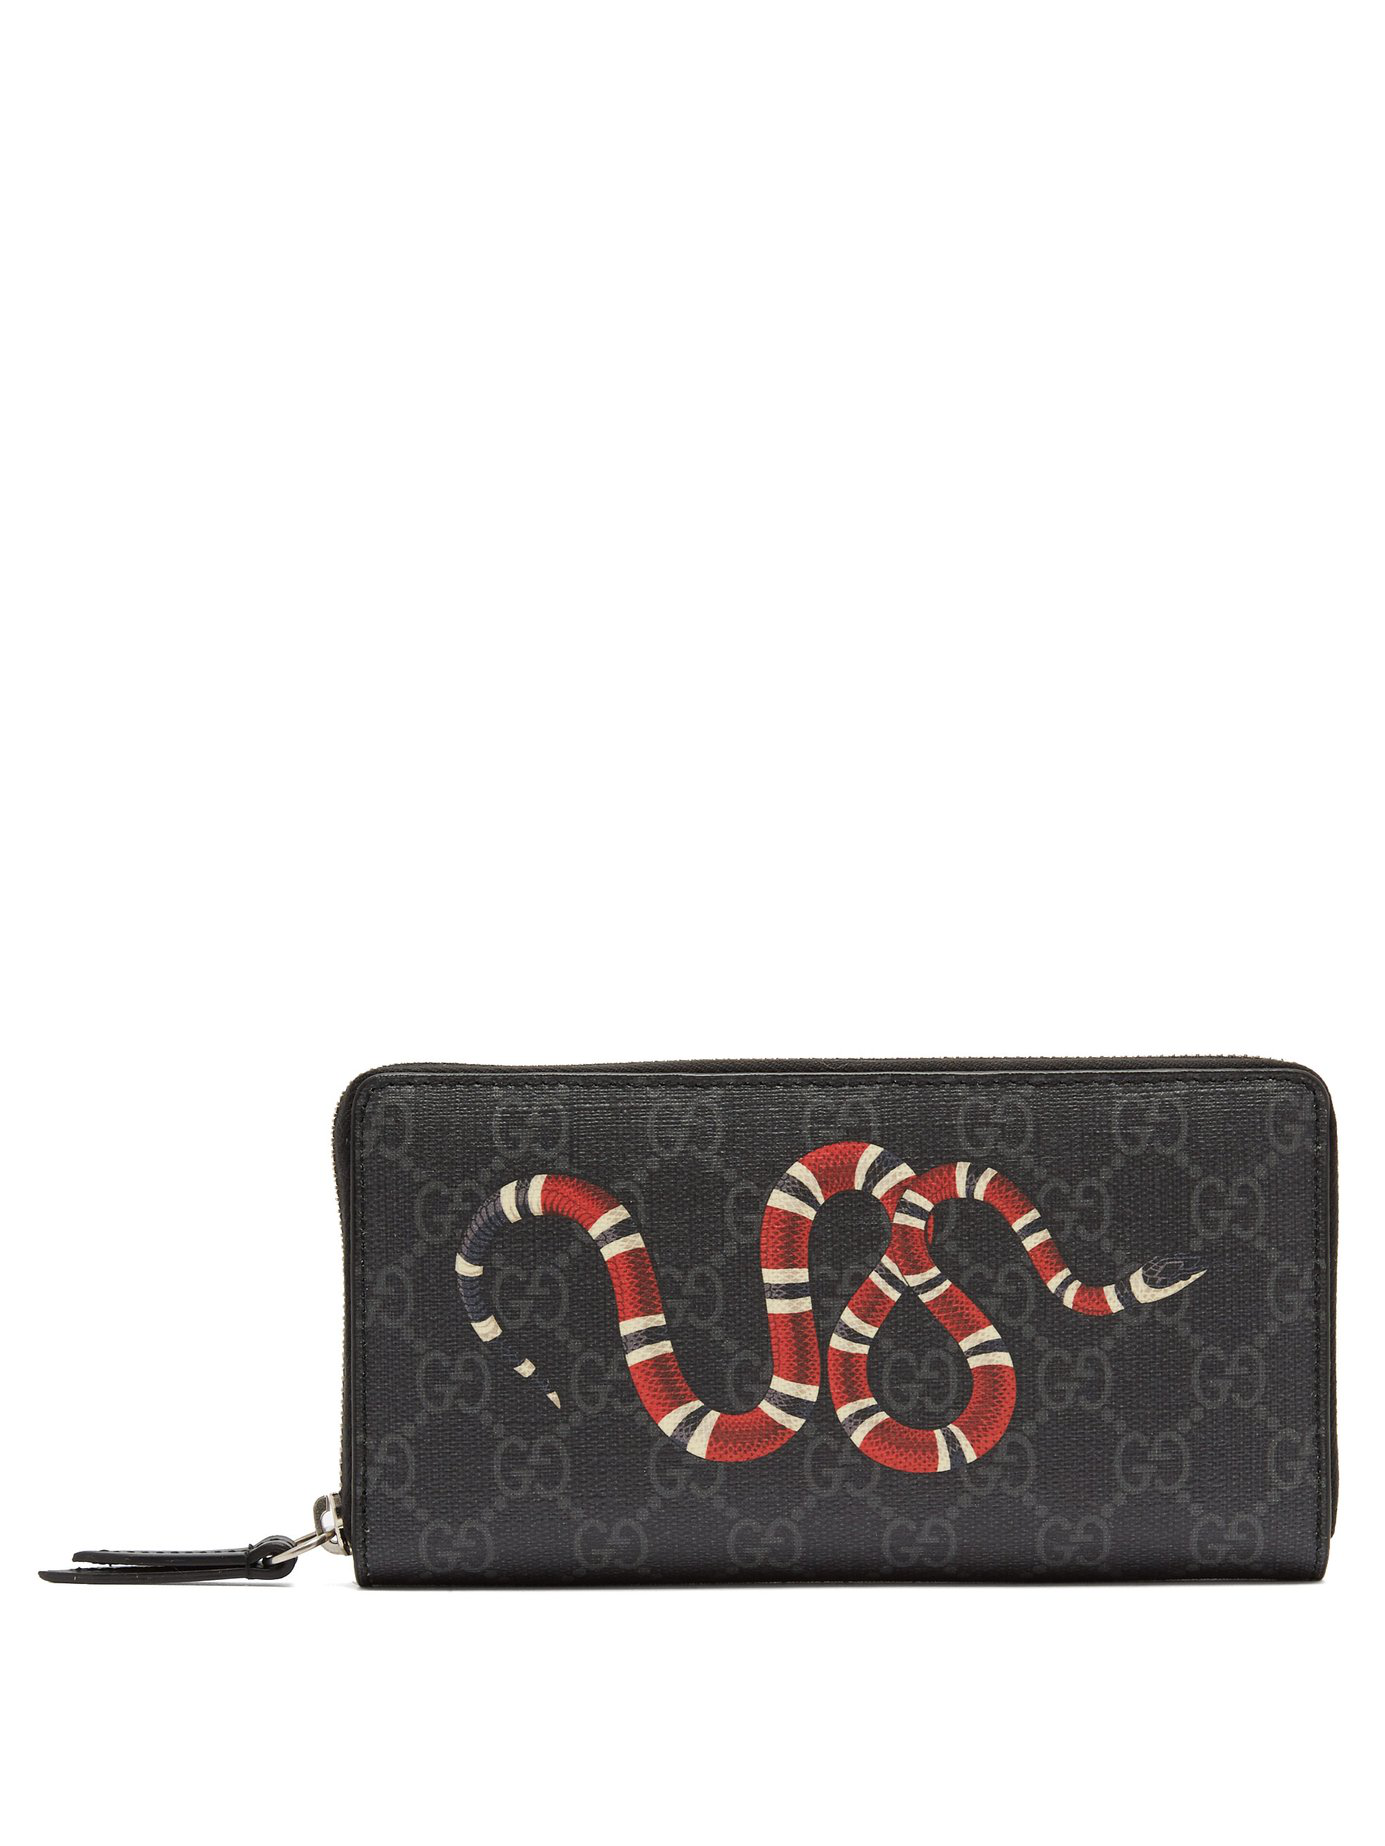 289e39a262 Kingsnake Zip-Around Leather Wallet in Black